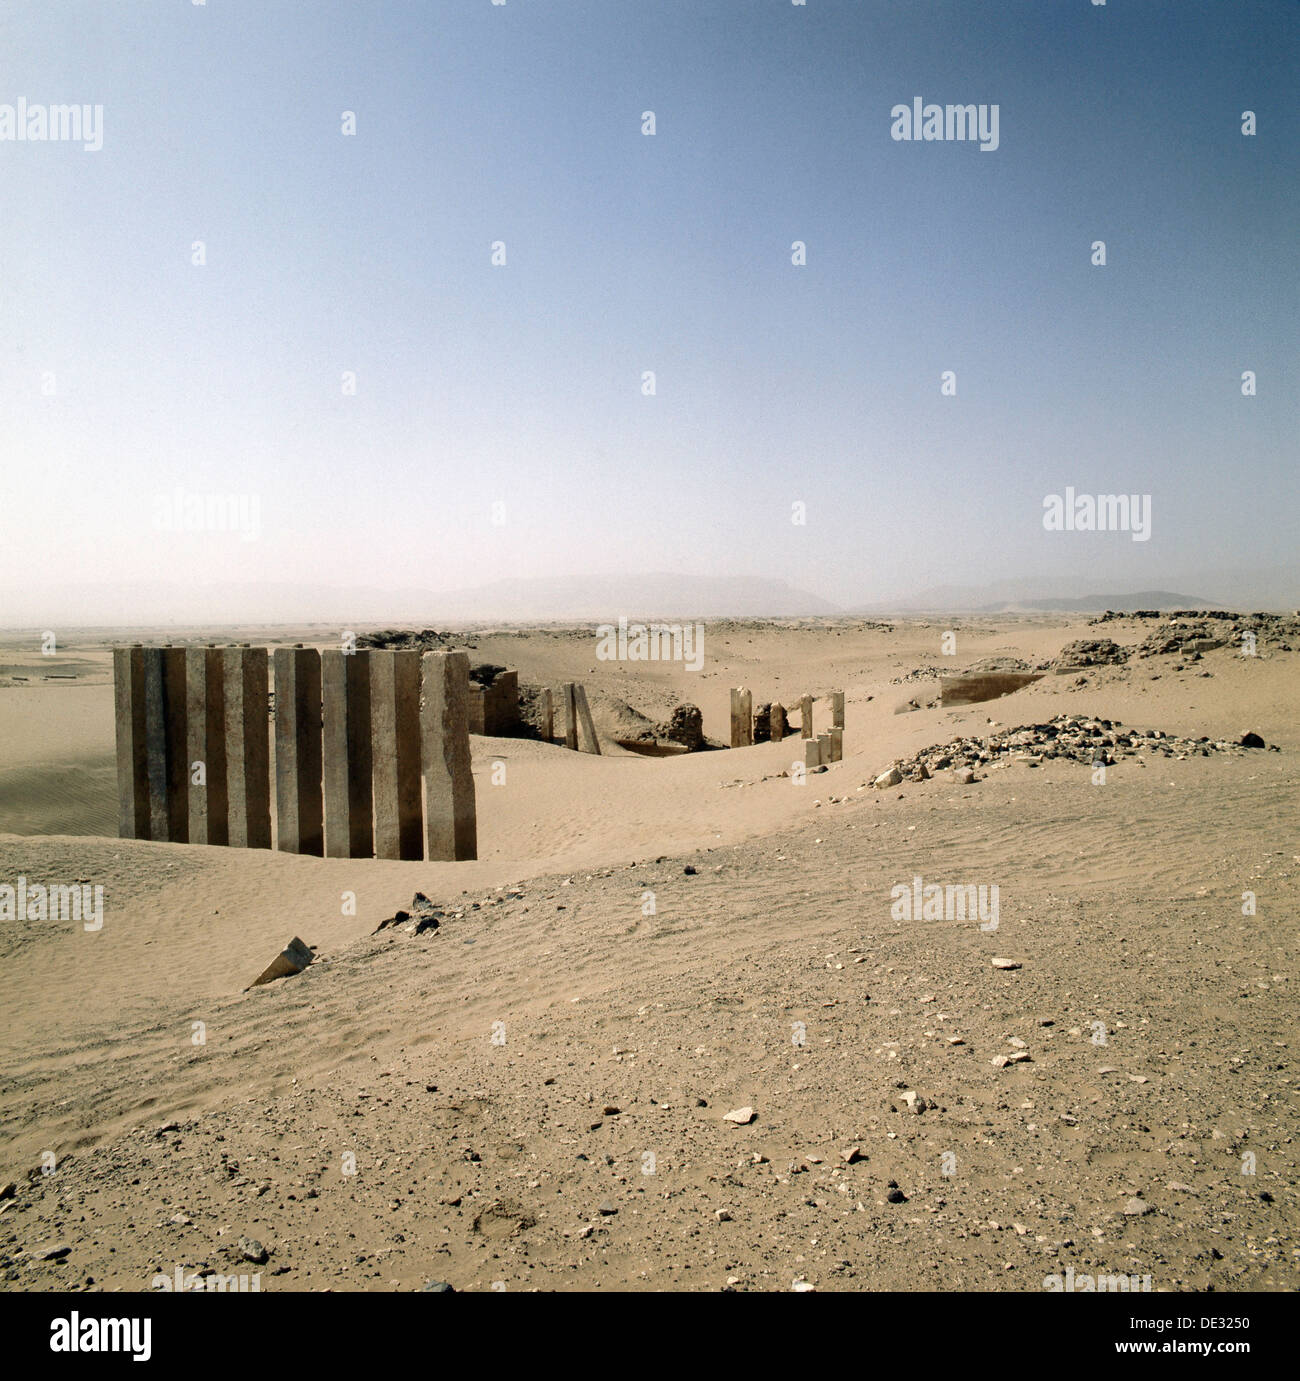 The Awwam Temple was the largest to be built in South Arabia and was dedicated to the moon god Almaqah. - Stock Image